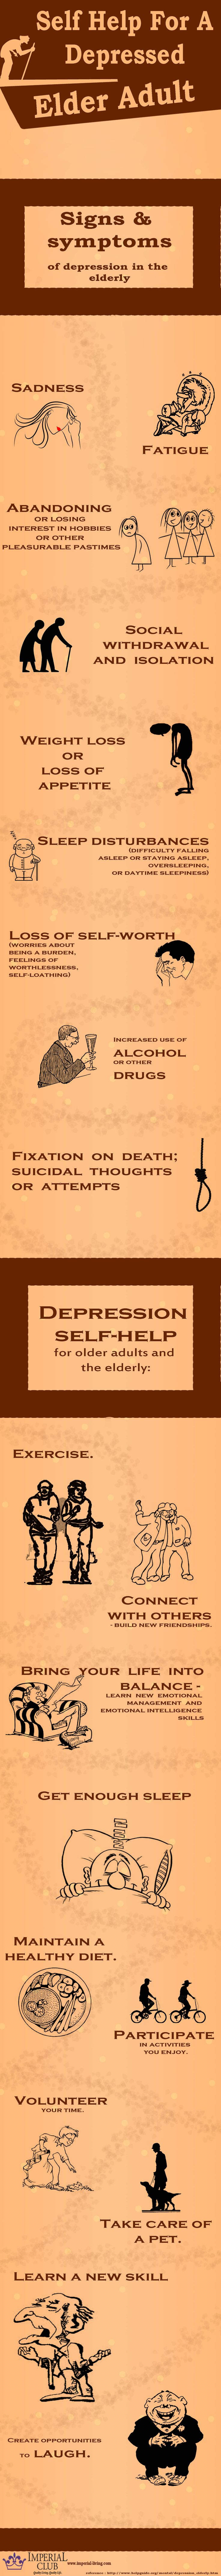 Self help for a depressed Elder Adult – infographics  :   If you are tired of home ownership or isolation of living alone, Welcome to Imperial Club, which is Aventura's finest Independent and Assisted Living rental retirement communities.  http://www.imperial-living.com/about-us